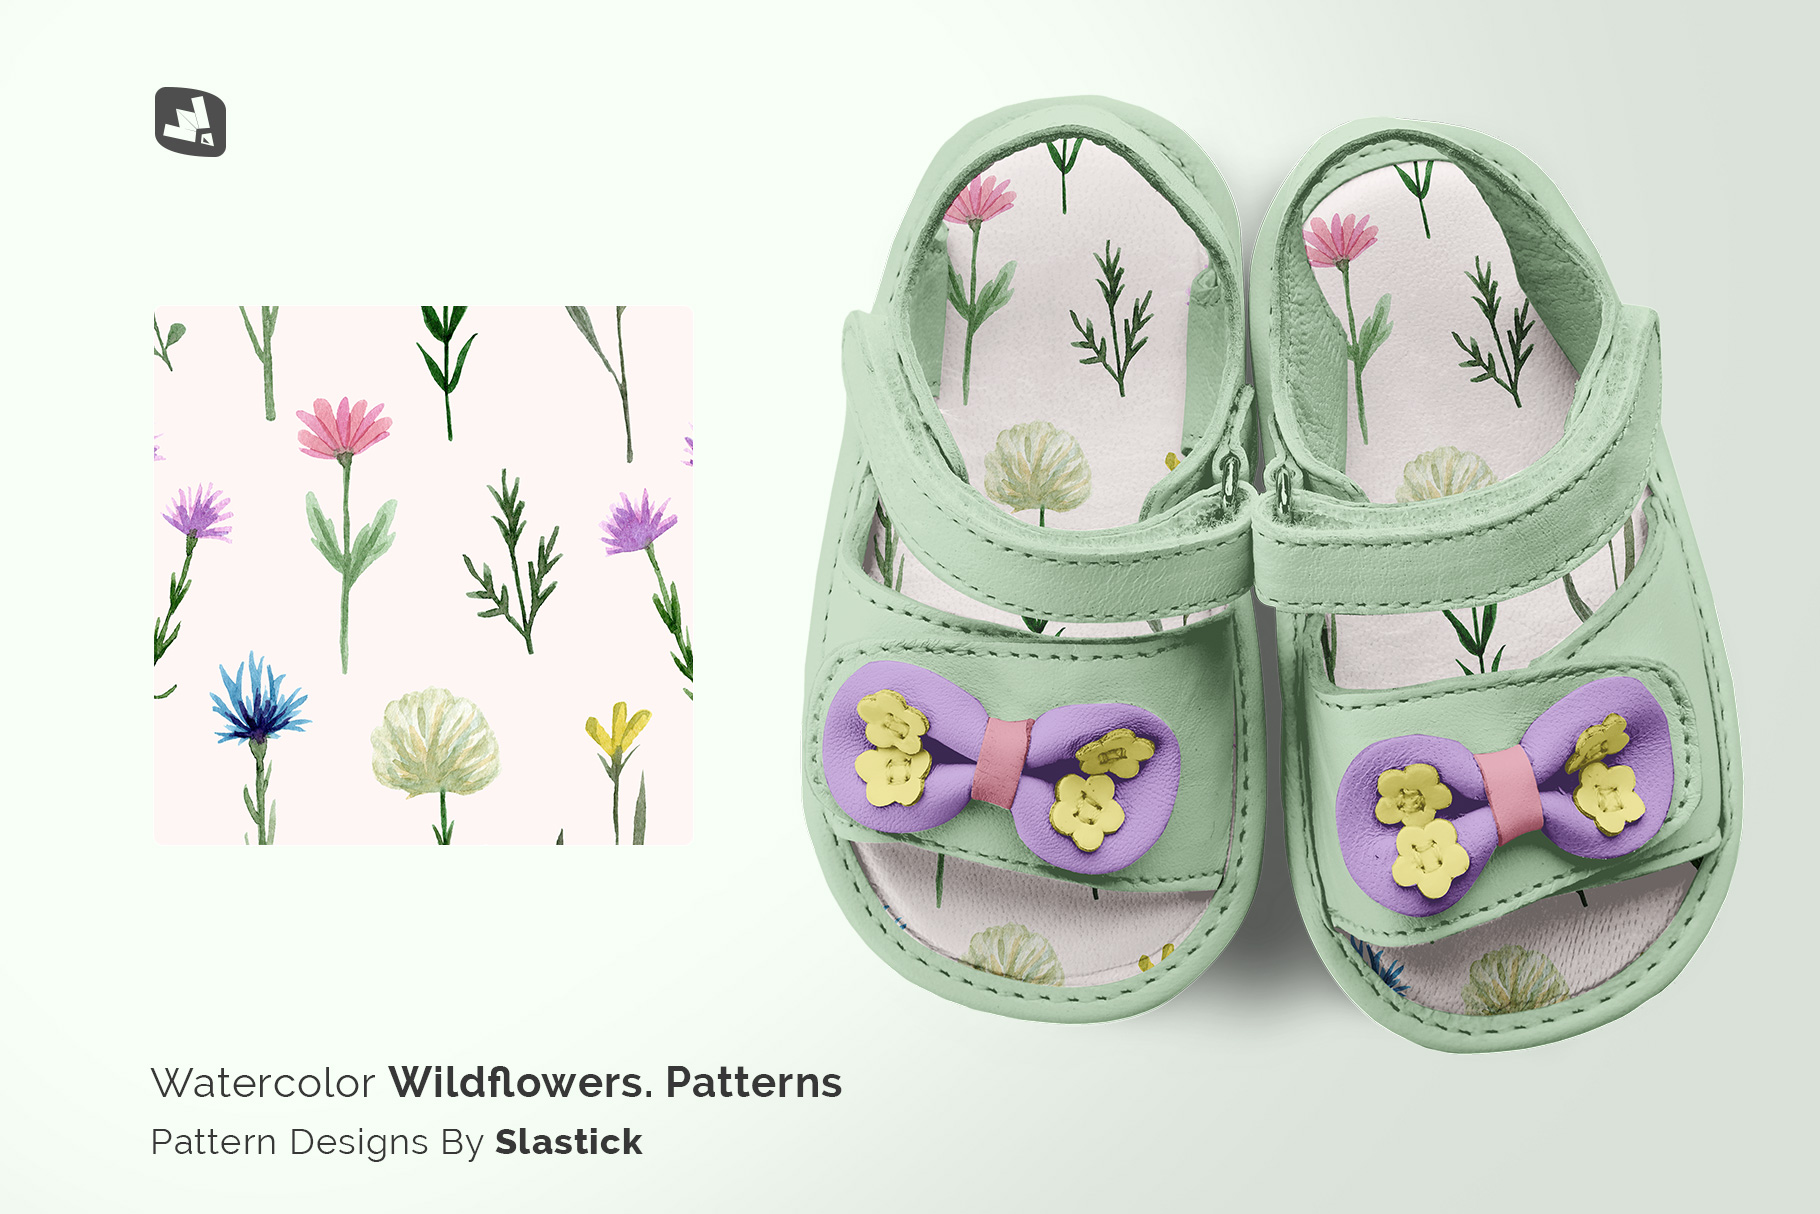 designer'as credit of the topview baby sandals with bow mockup